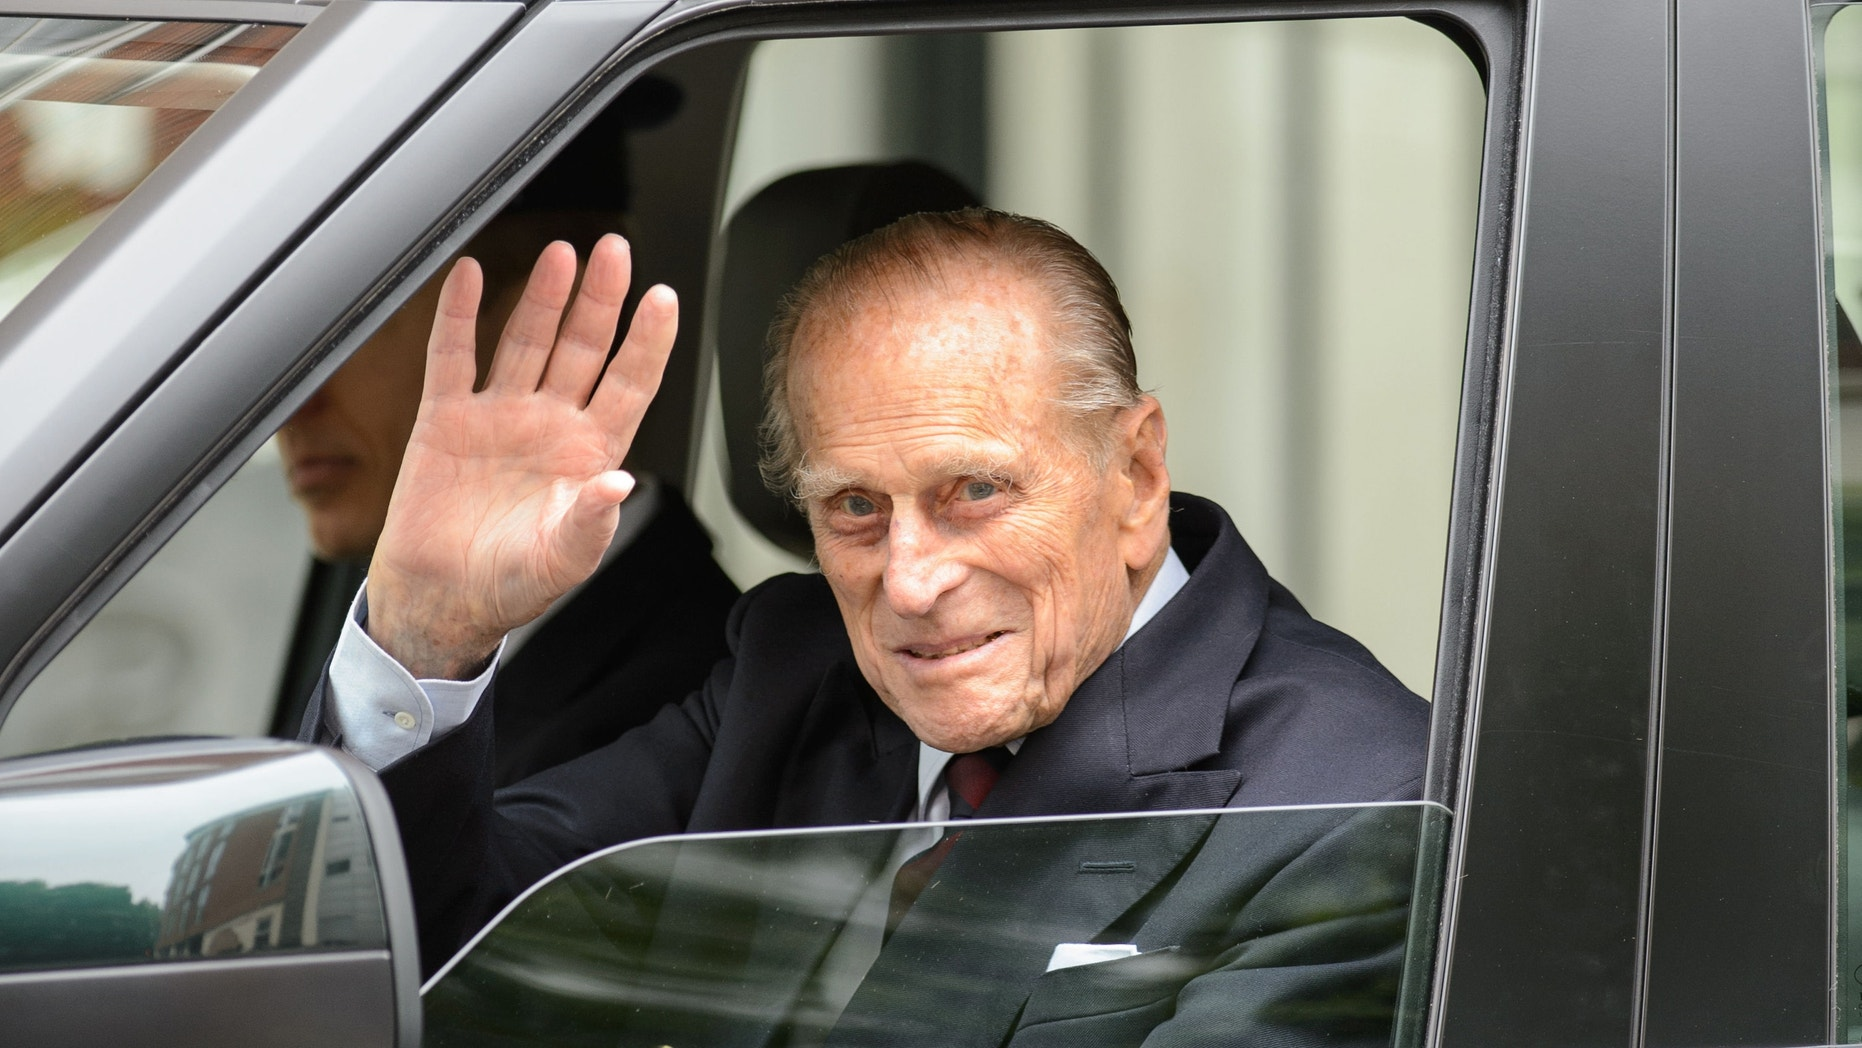 June 17, 2013 - Britain's Prince Philip leaves the London Clinic in central London, Monday . The husband of Queen Elizabeth II, who turned 92 last week walked out 10 days after undergoing exploratory surgery on his abdomen.